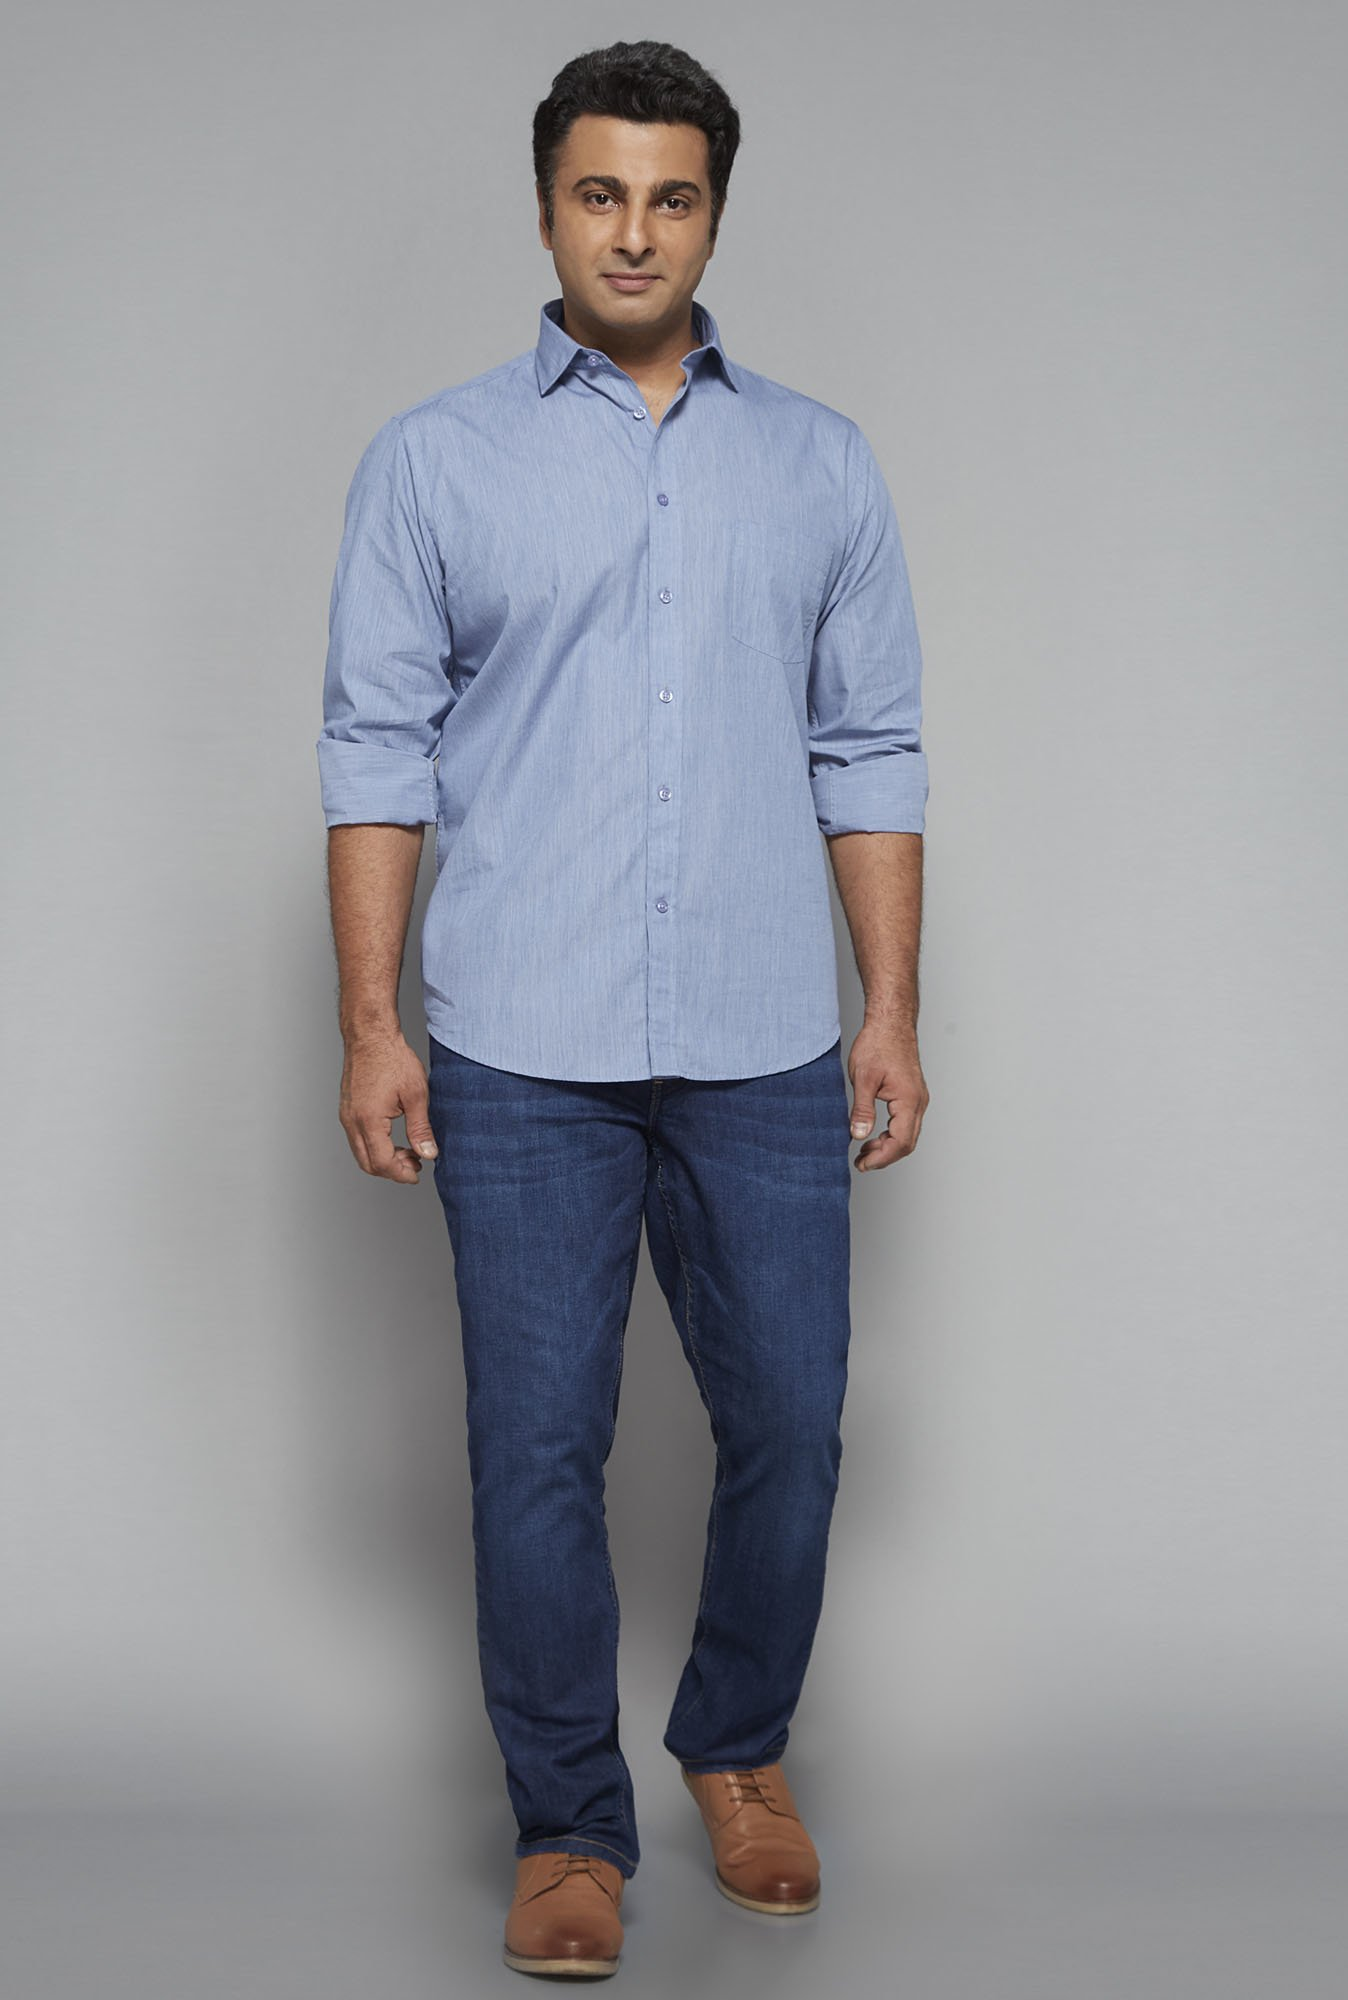 Oak & Keel by Westside Blue Solid Shirt